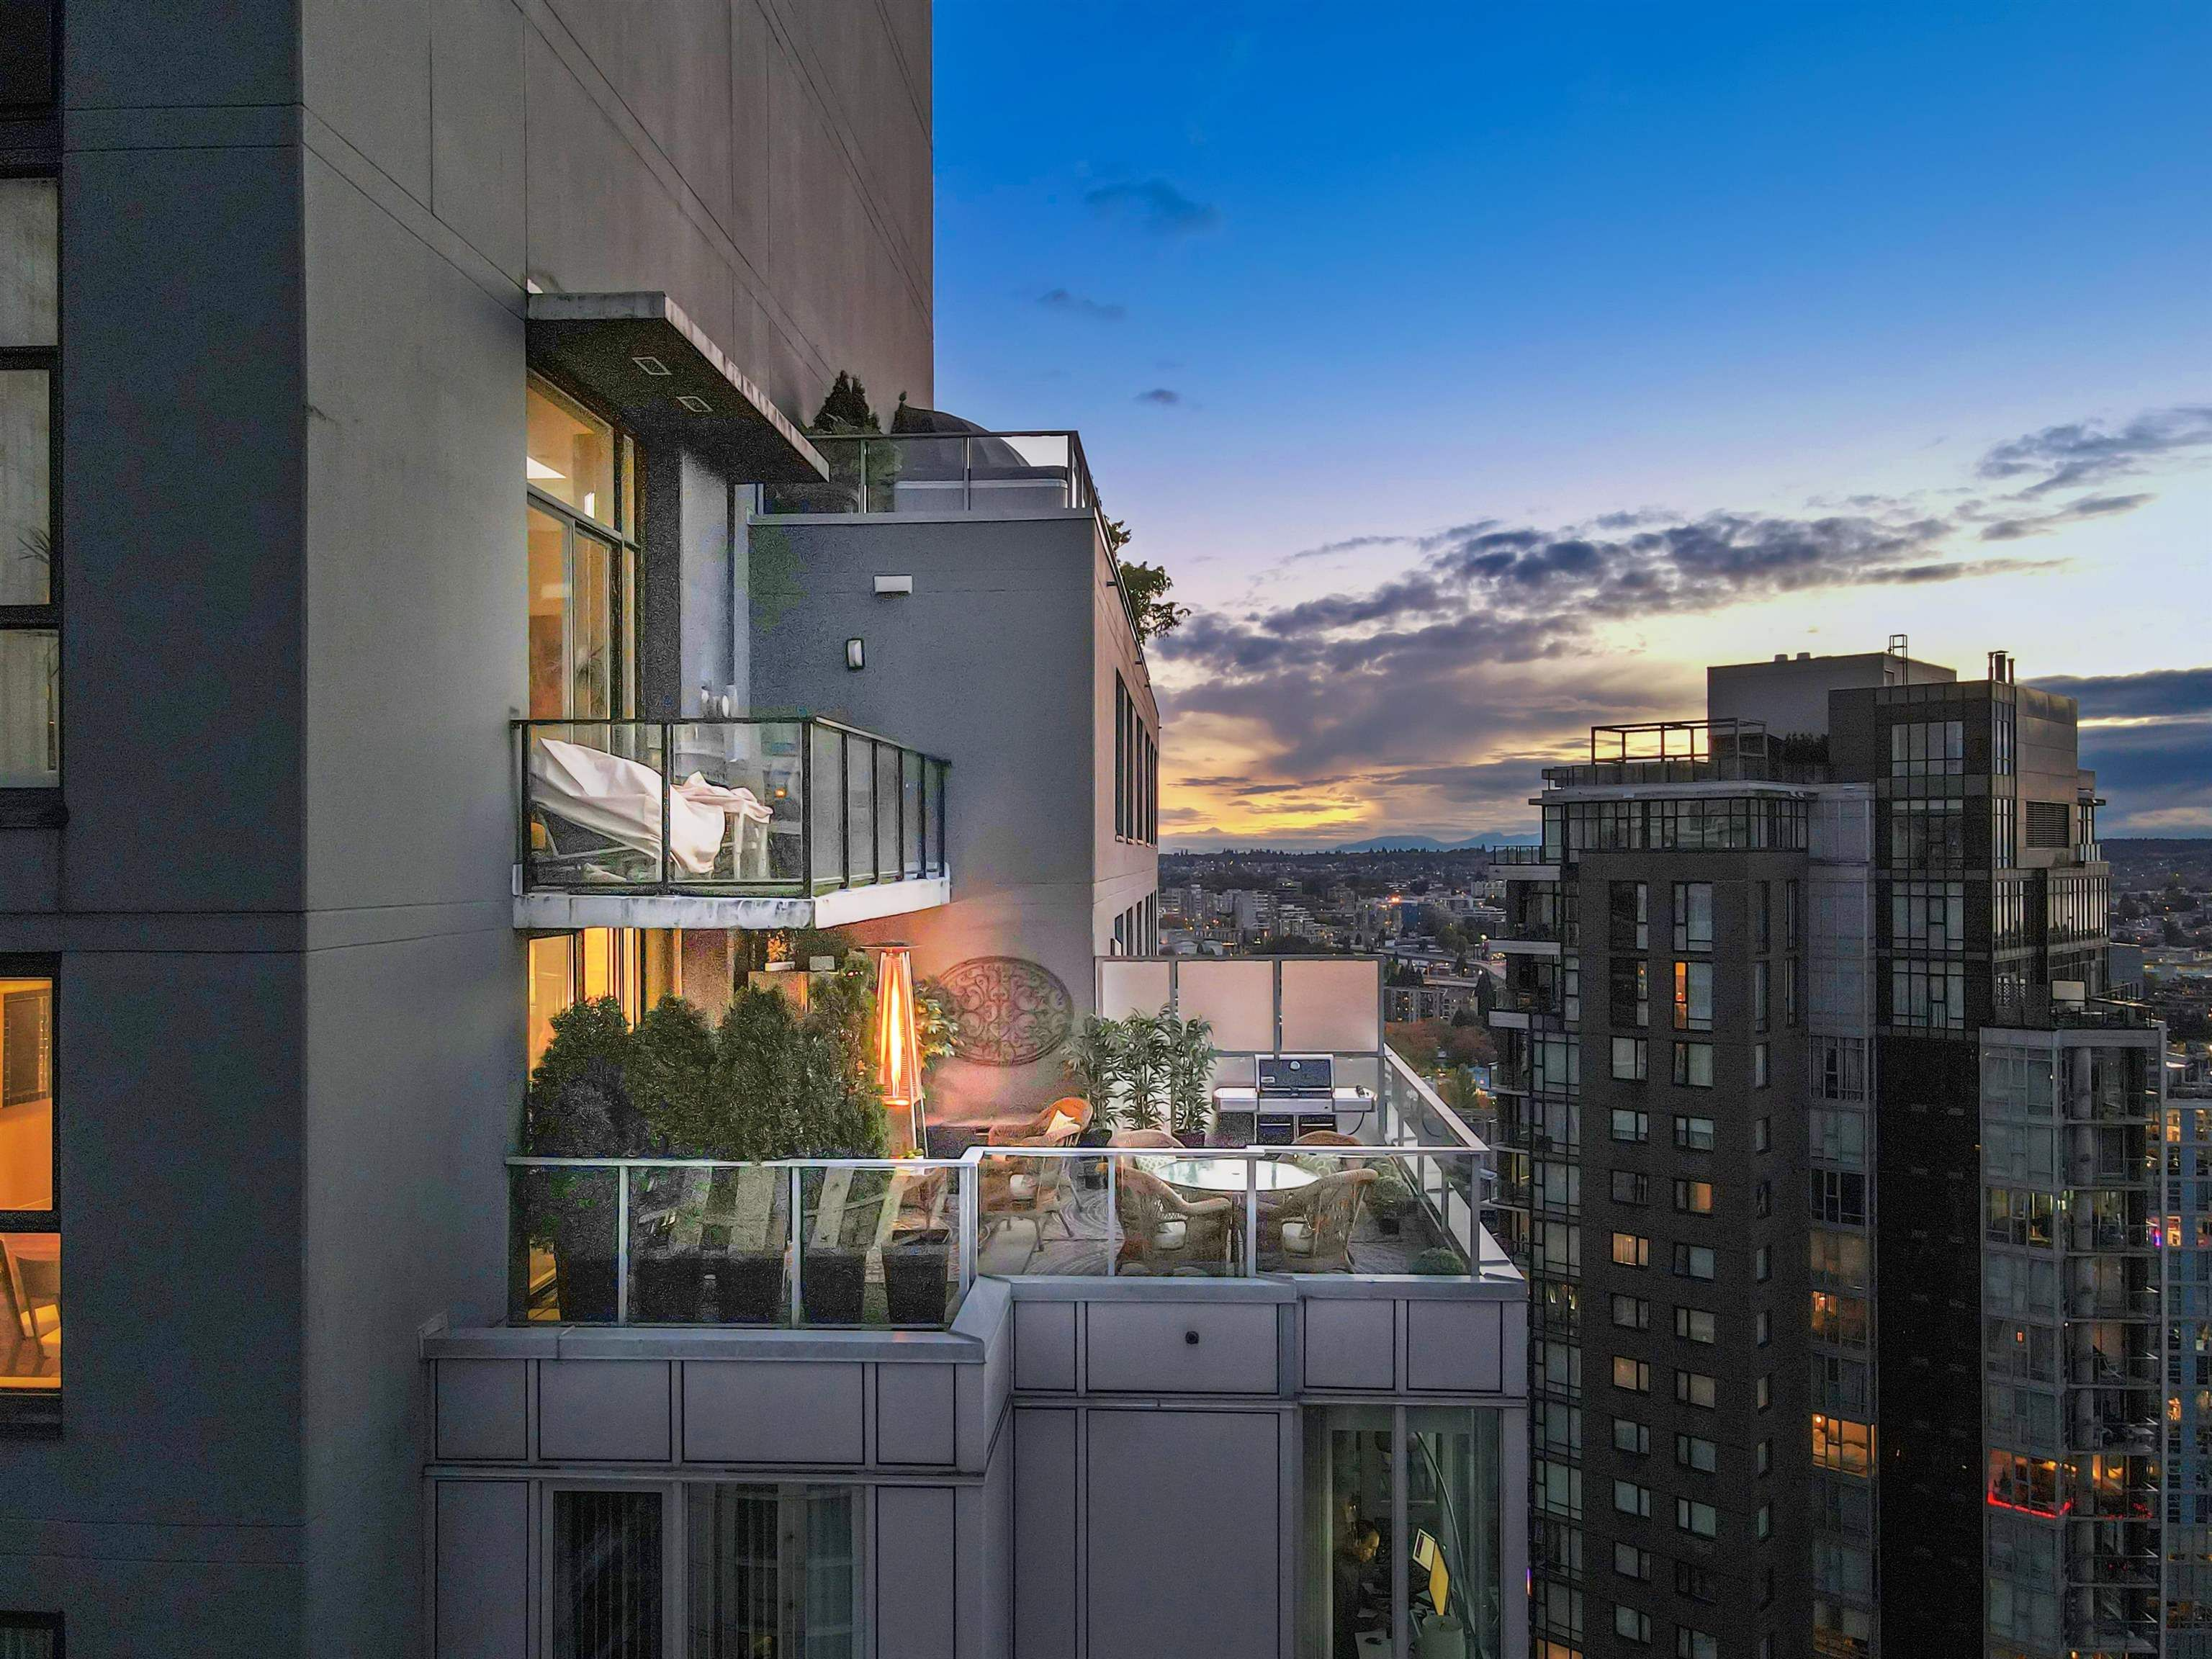 """Main Photo: 3503 1495 RICHARDS Street in Vancouver: Yaletown Condo for sale in """"Azura II"""" (Vancouver West)  : MLS®# R2624854"""